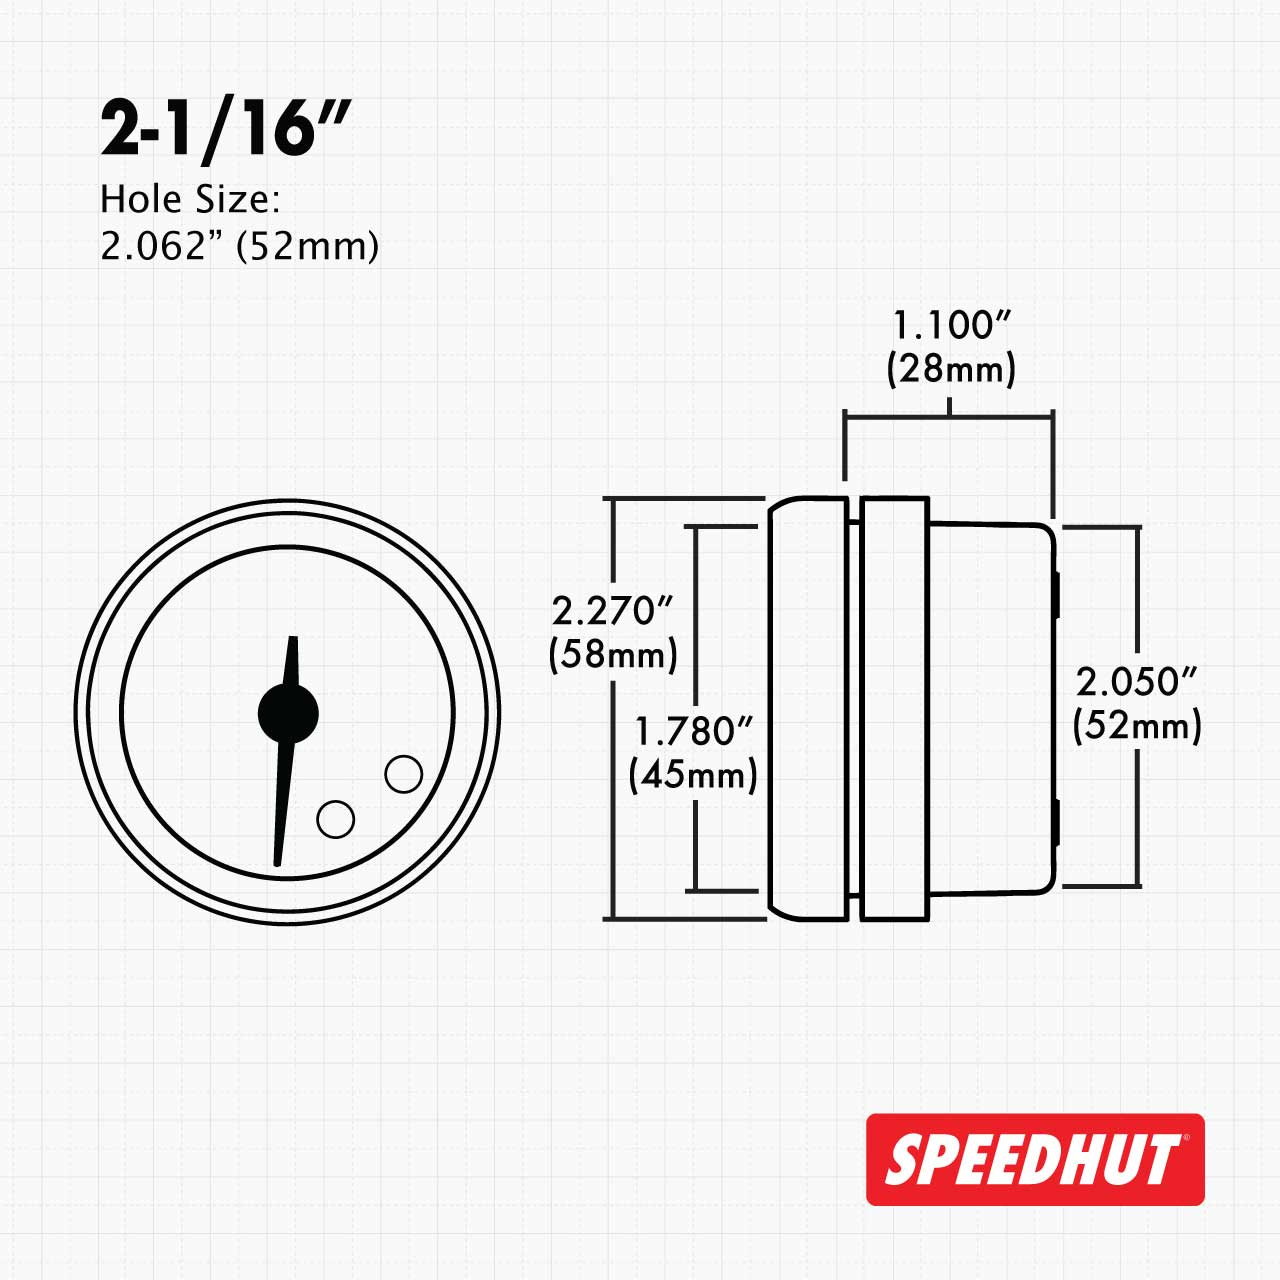 """2-1/16"""" Freedom CAN-BUS Oil Pressure Gauge 0-100psi (w/ warning) (For GM vehicles only)"""